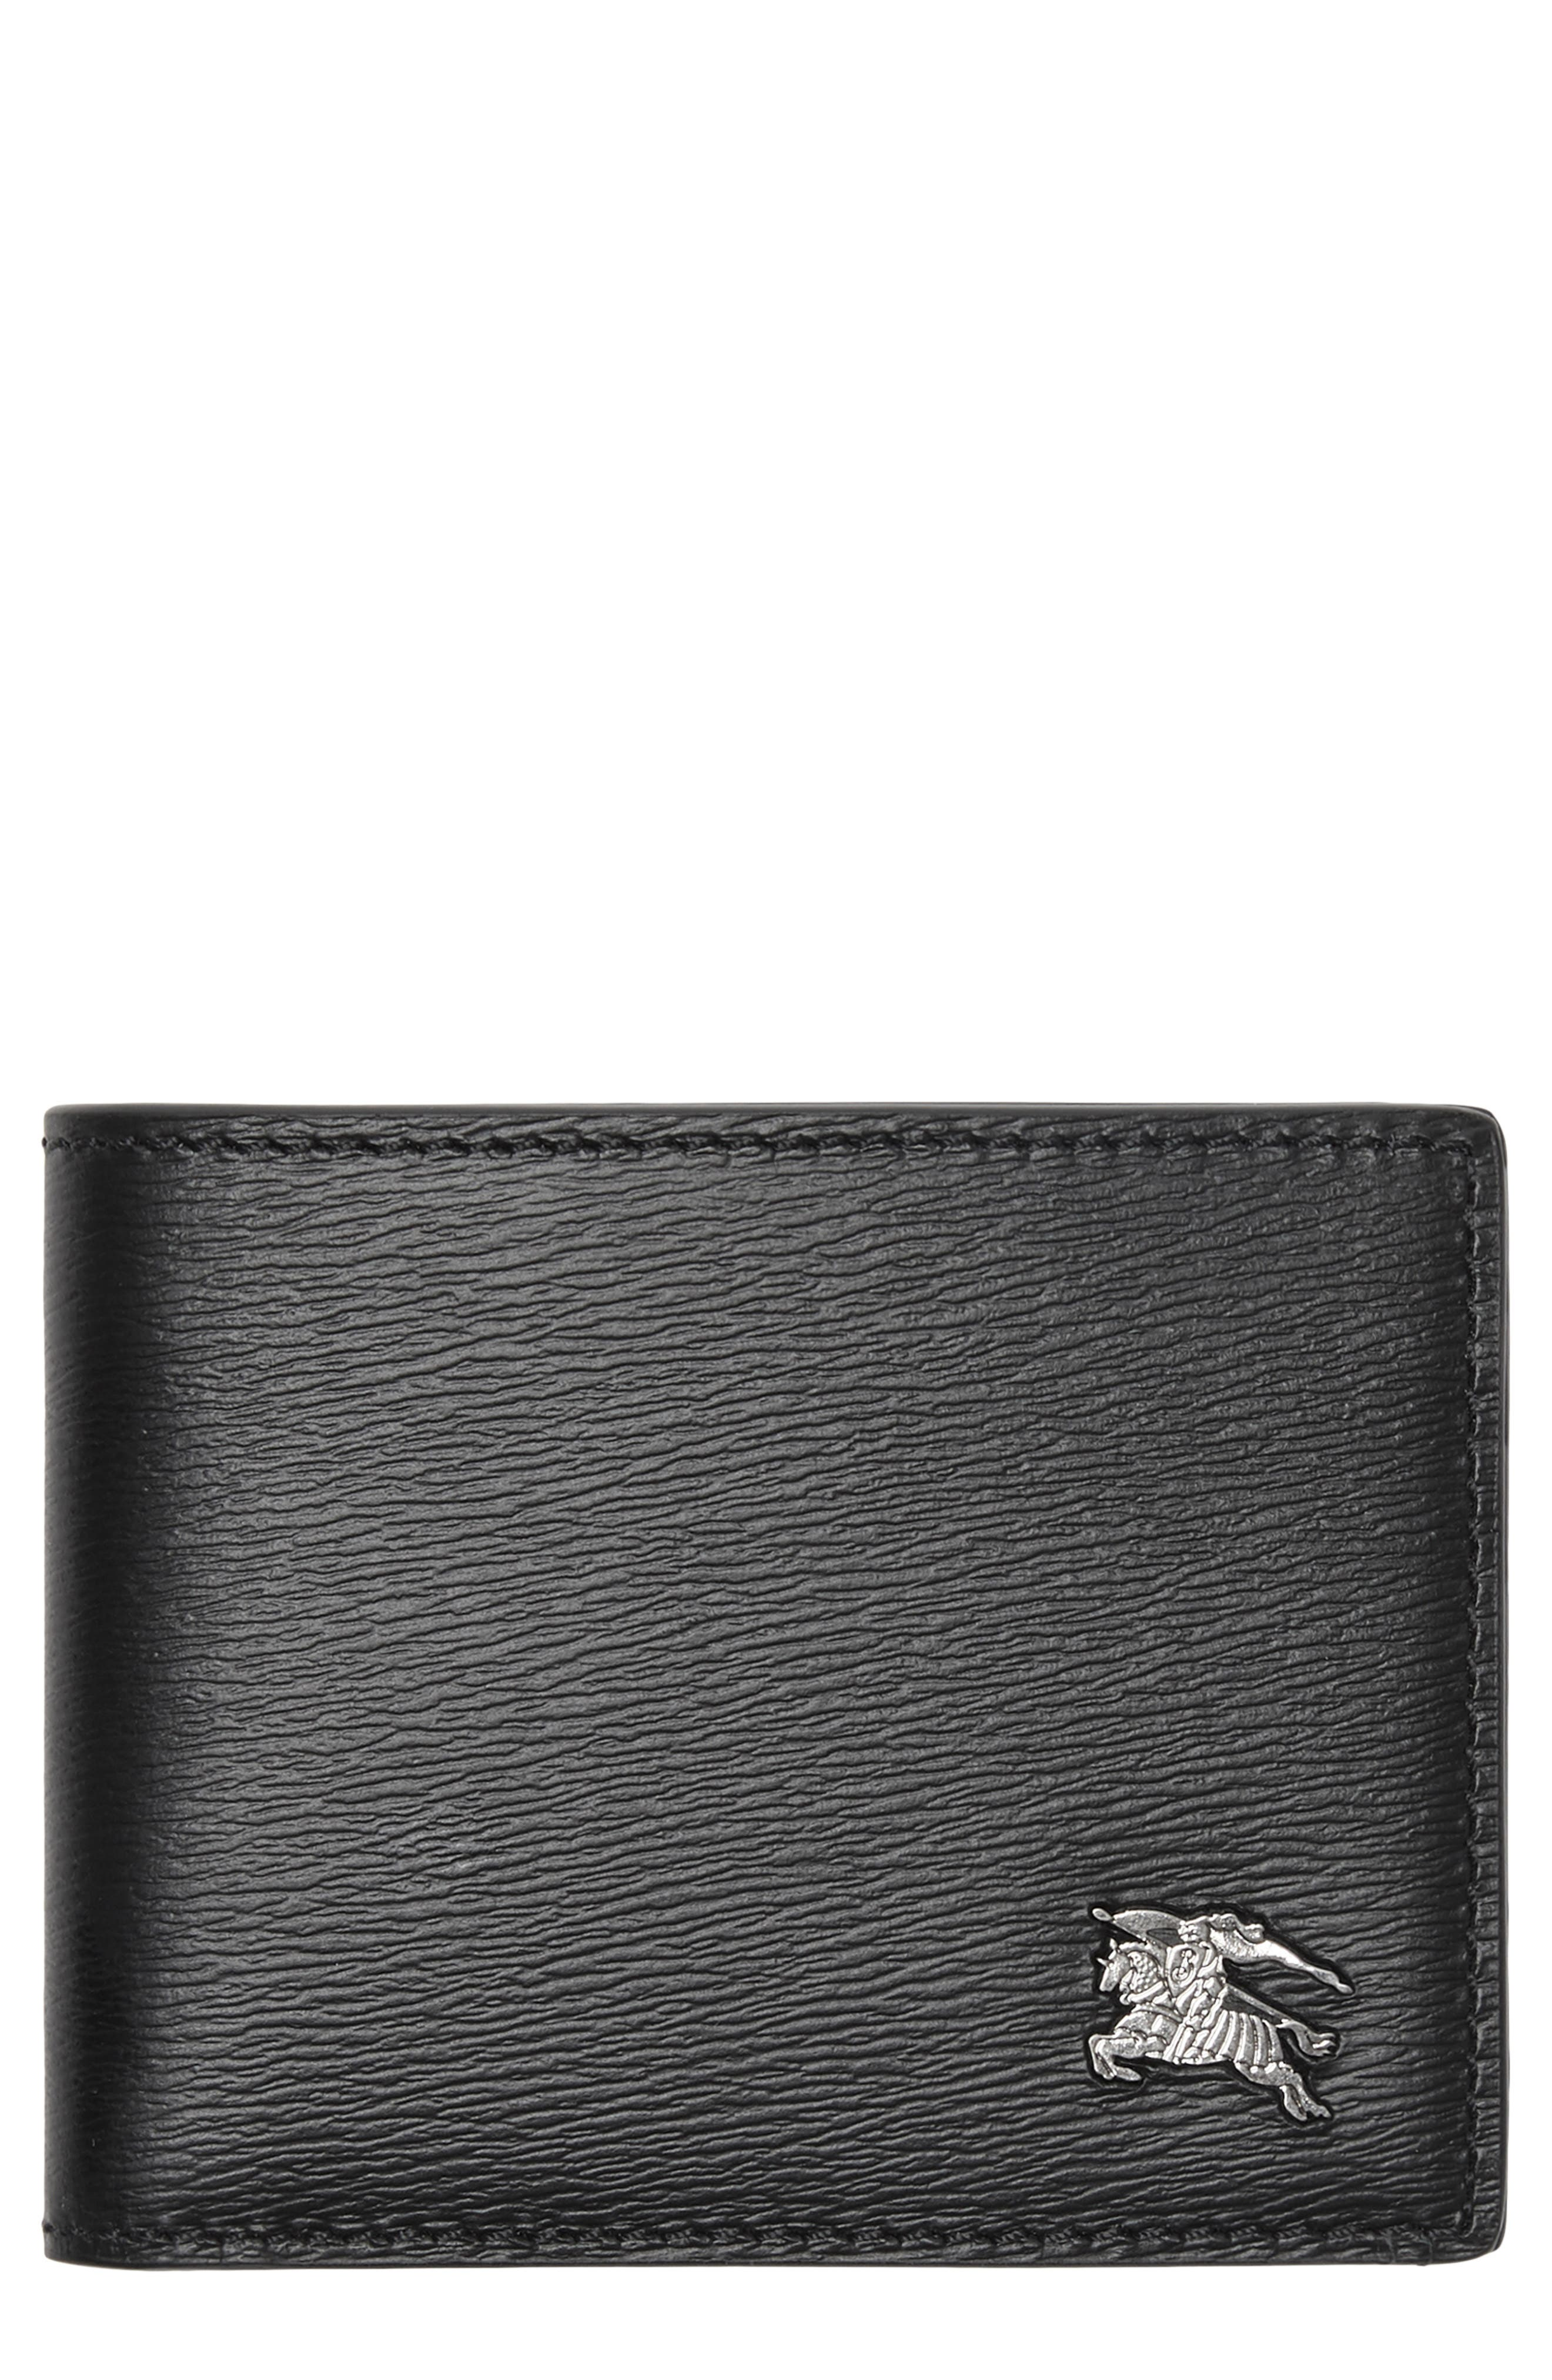 BURBERRY, Leather Bifold Wallet, Main thumbnail 1, color, 001